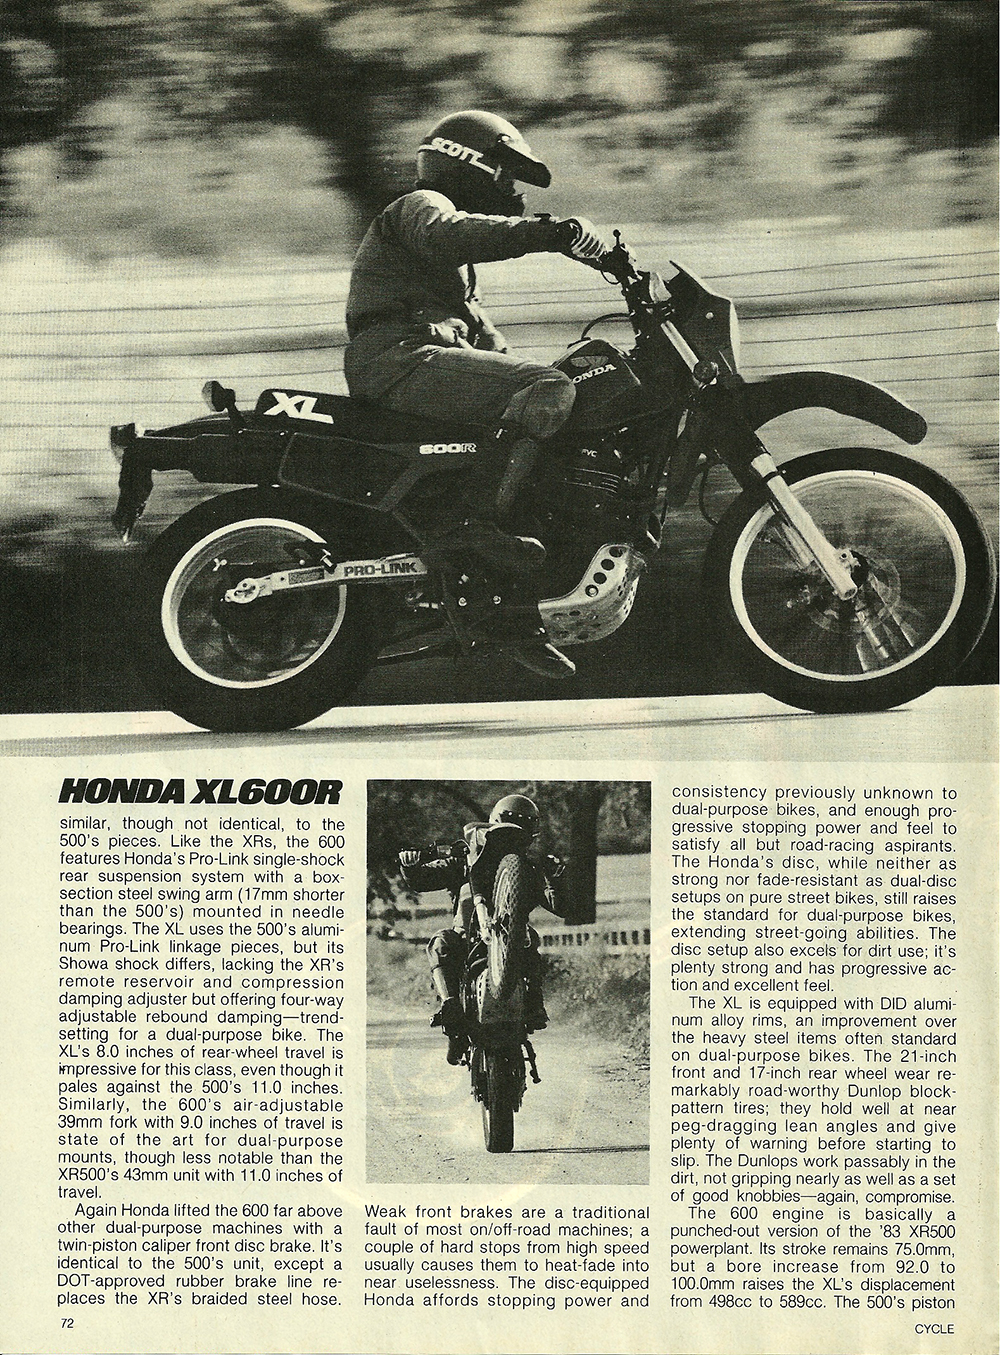 1983 Honda XL600R road test 3.jpg